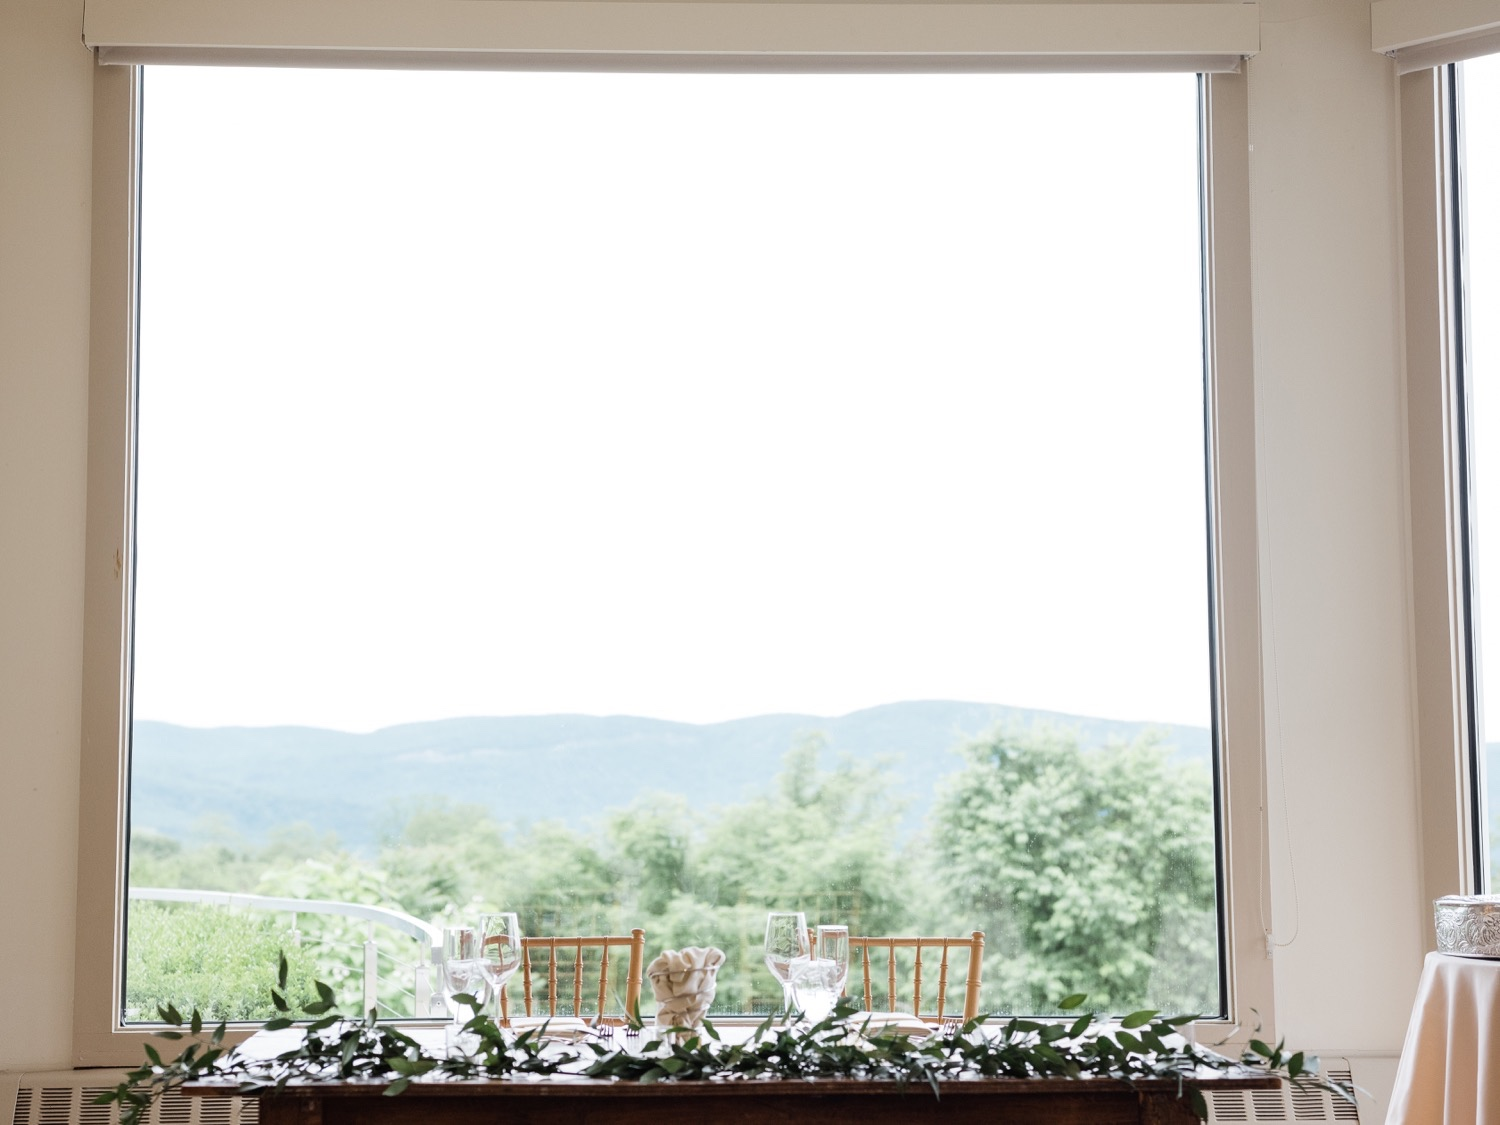 The Garrison Wedding, The Garrison venue, Hudson Valley wedding, hudson valley wedding photographer, catskills wedding photographer, the garrison wedding photos, best catskills wedding photographer, dinner ideas, greenery reception, chic modern dinner ideas